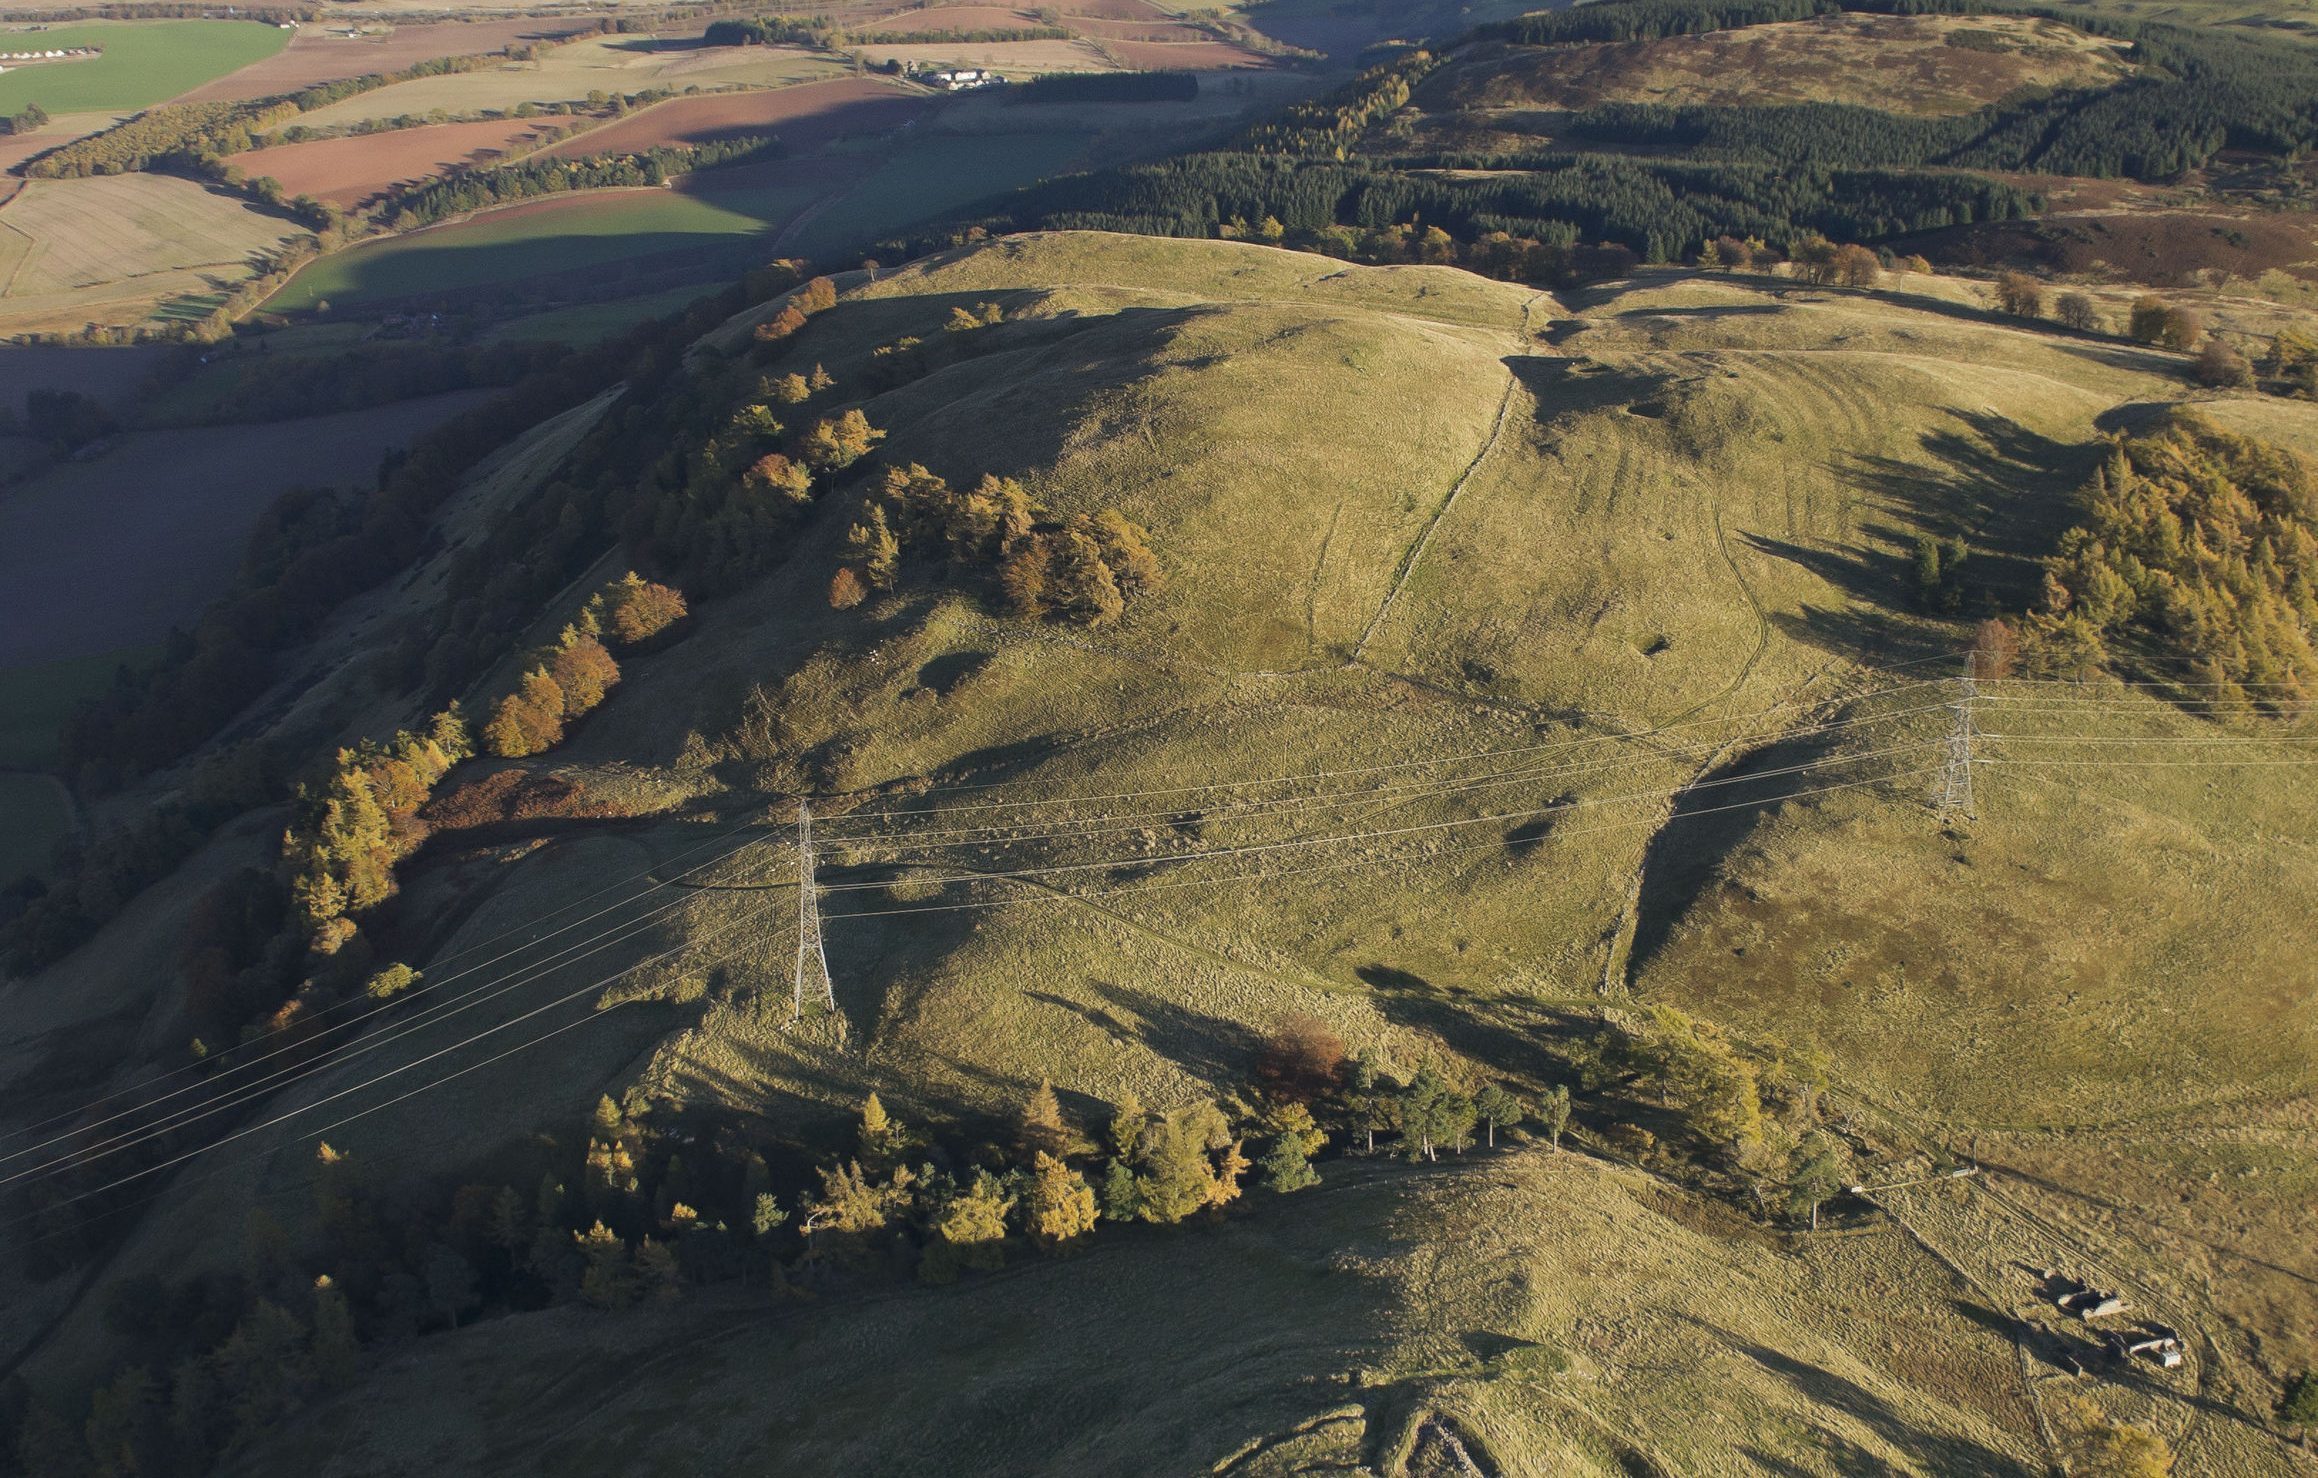 Castlelaw hill fort in Midlothian (Kieran Baxter/Arts and Humanities Research Council/PA Wire)